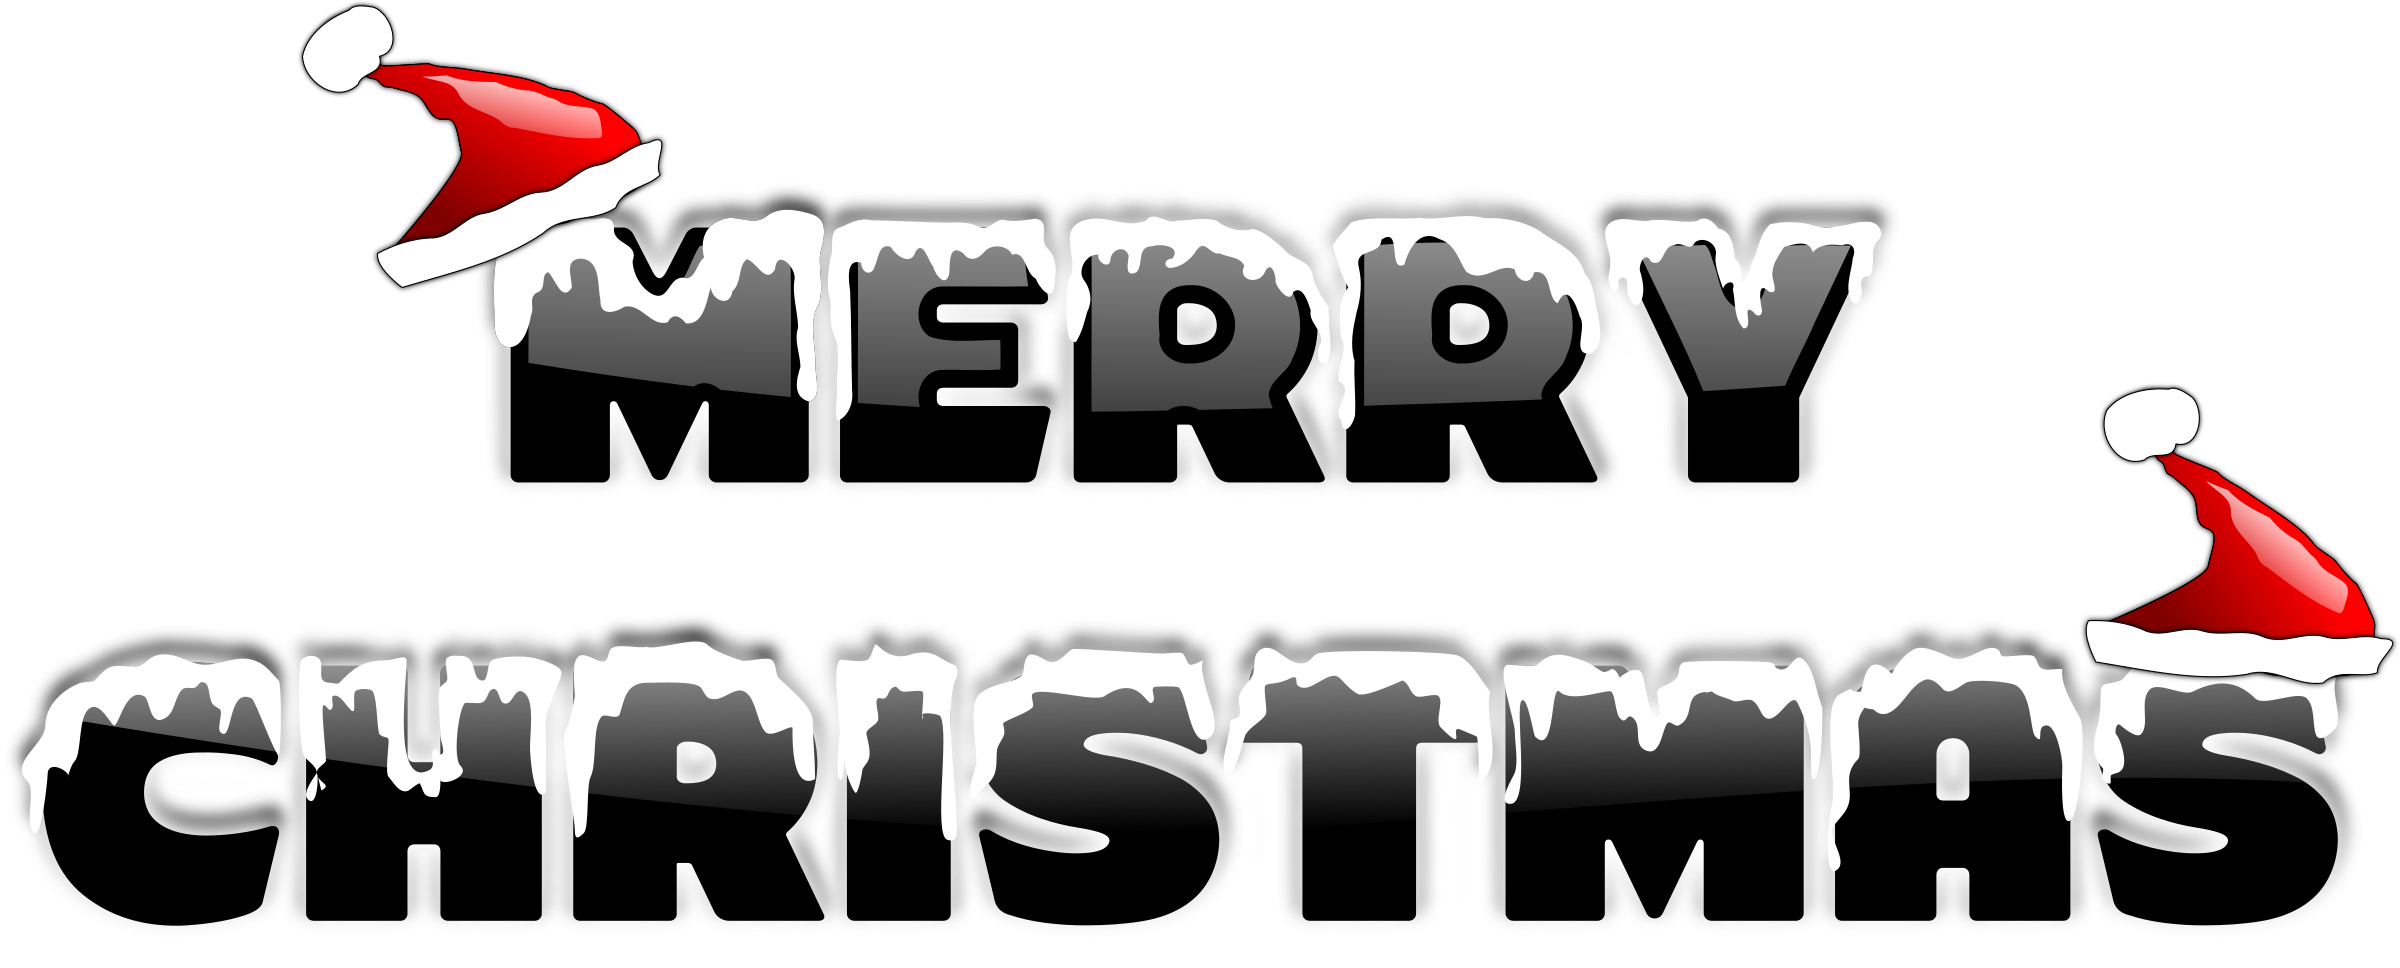 Merry christmas words clipart jpg black and white stock Clipart - MERRY CHRISTMAS 2010 (2) jpg black and white stock